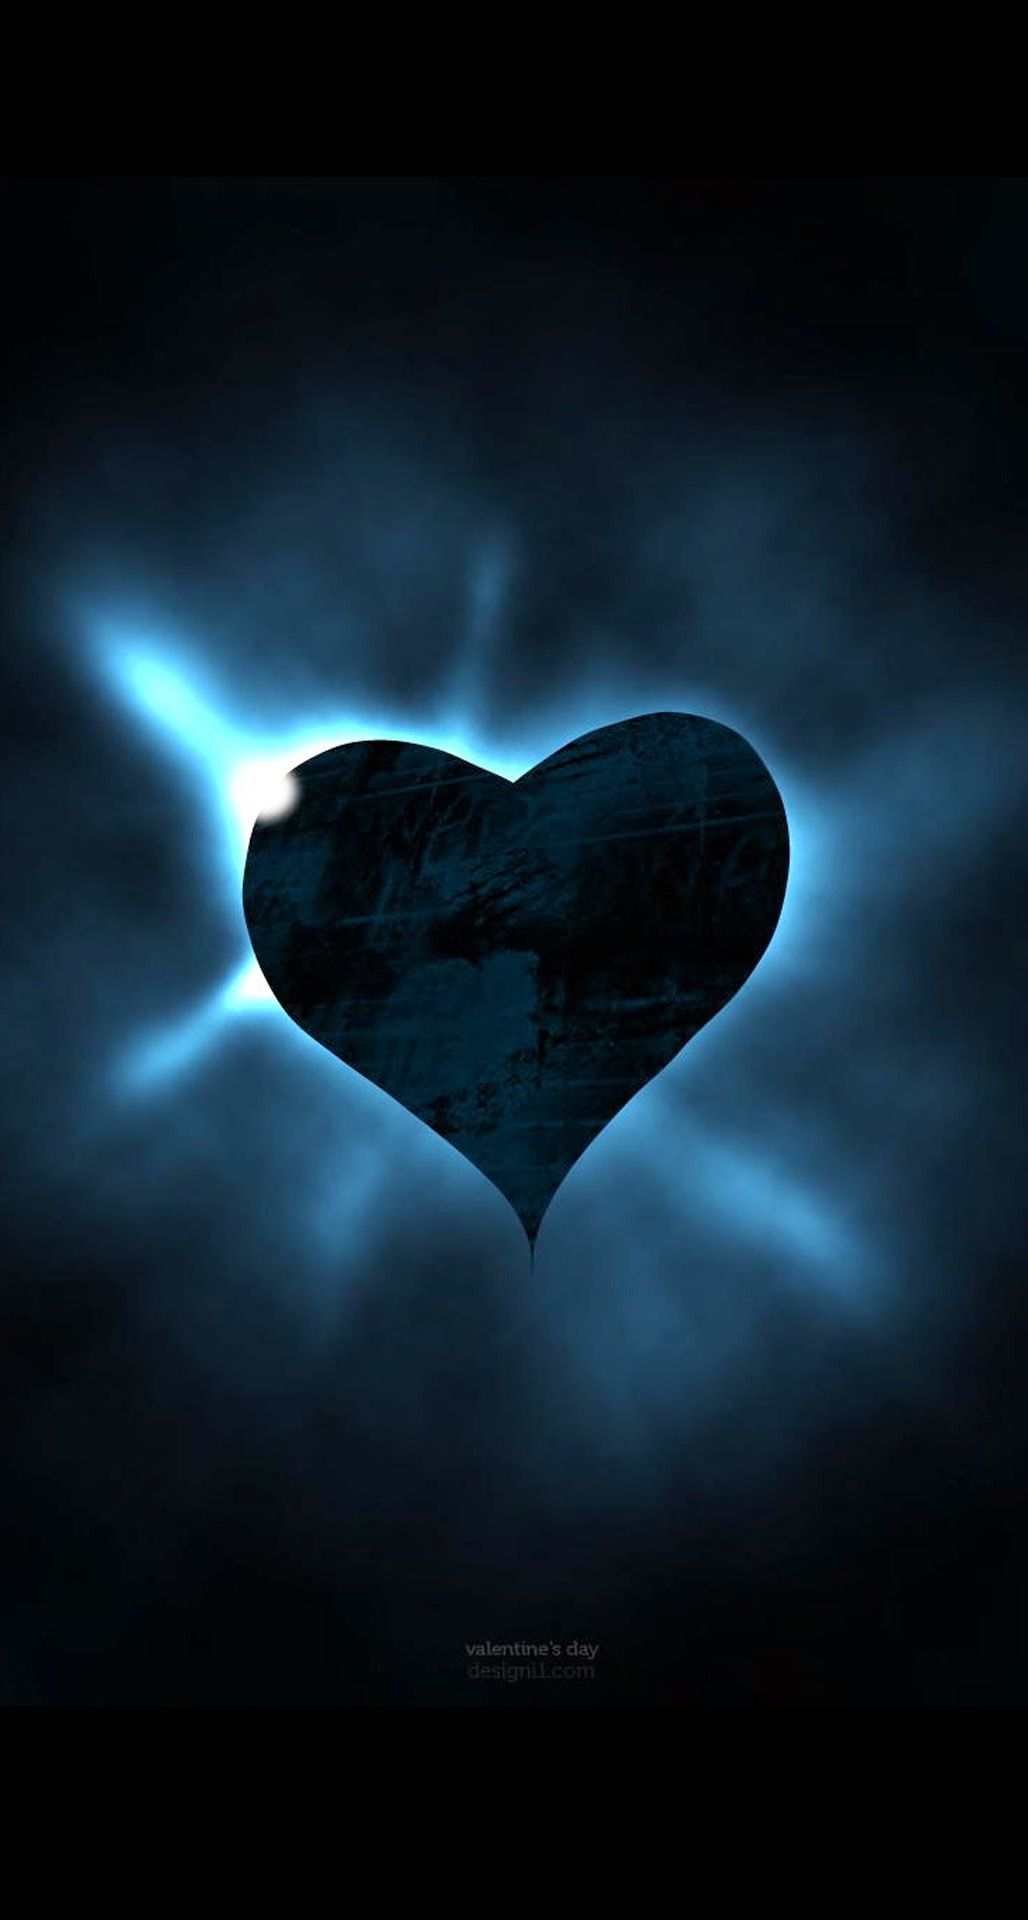 Pin By Christal Porter On Blue All Shades Iphone Wallpapers Heart Iphone Wallpaper Iphone Wallpaper Dark Heart Wallpaper